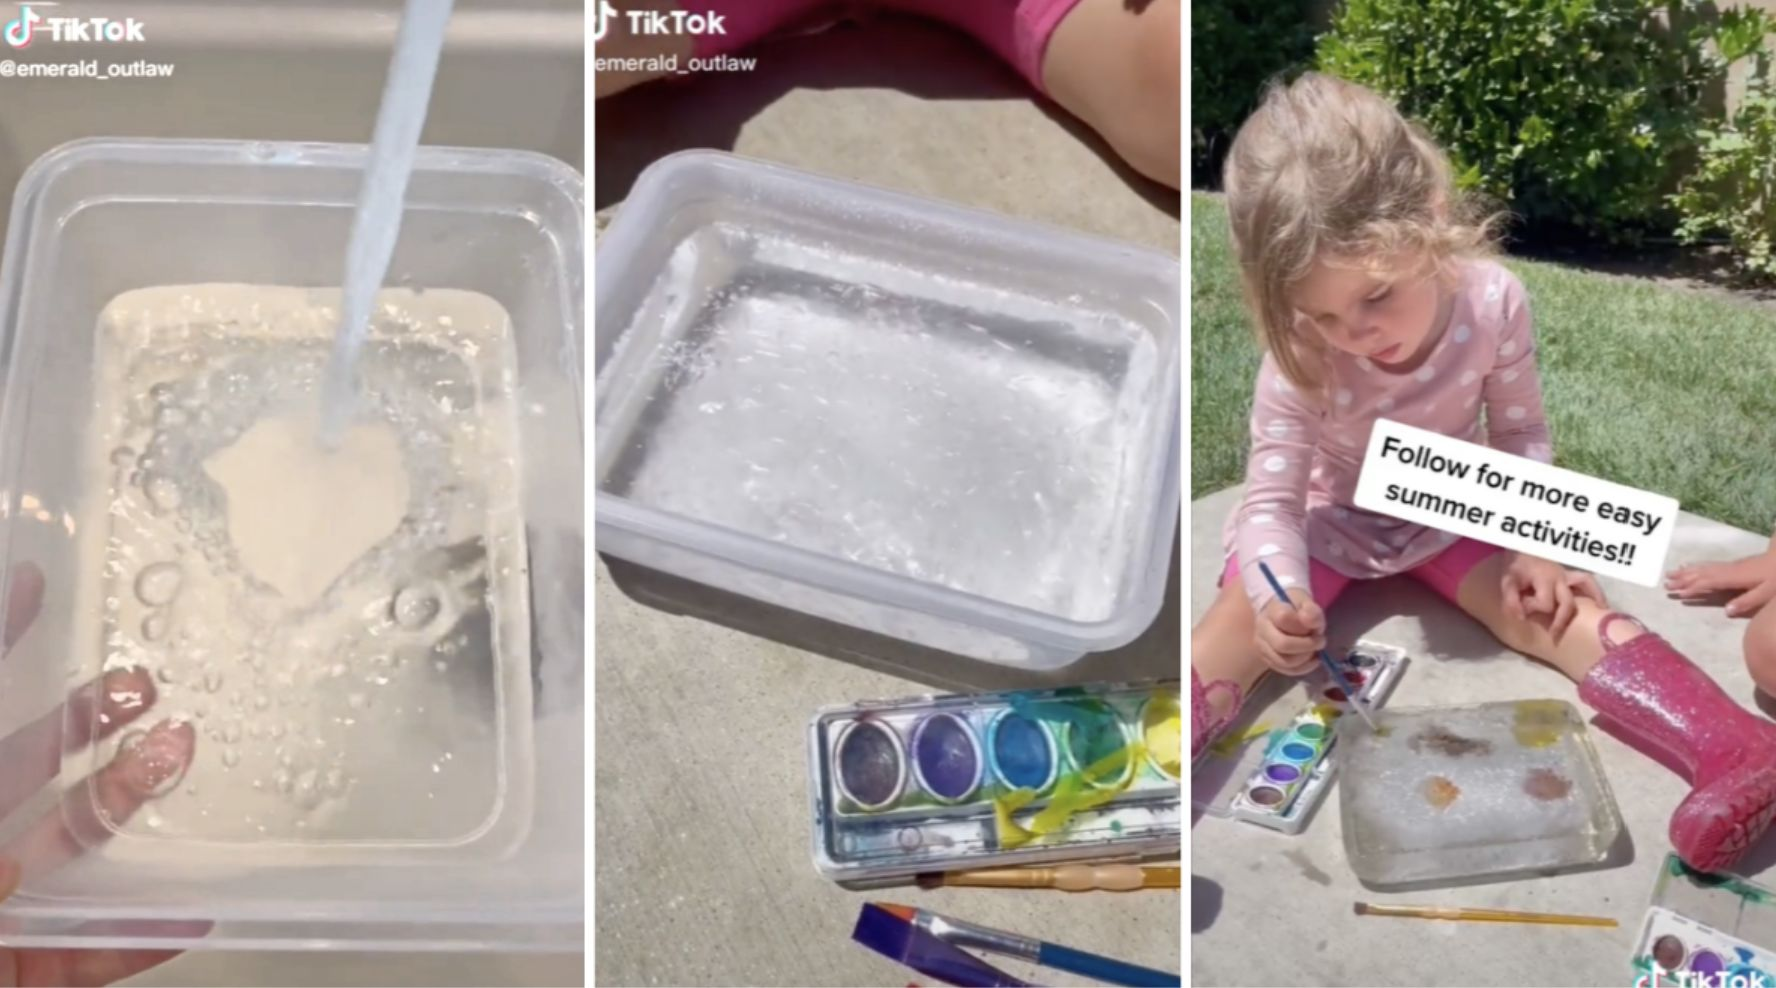 Ice painting is a brilliant way to keep kids cool and entertained this summer